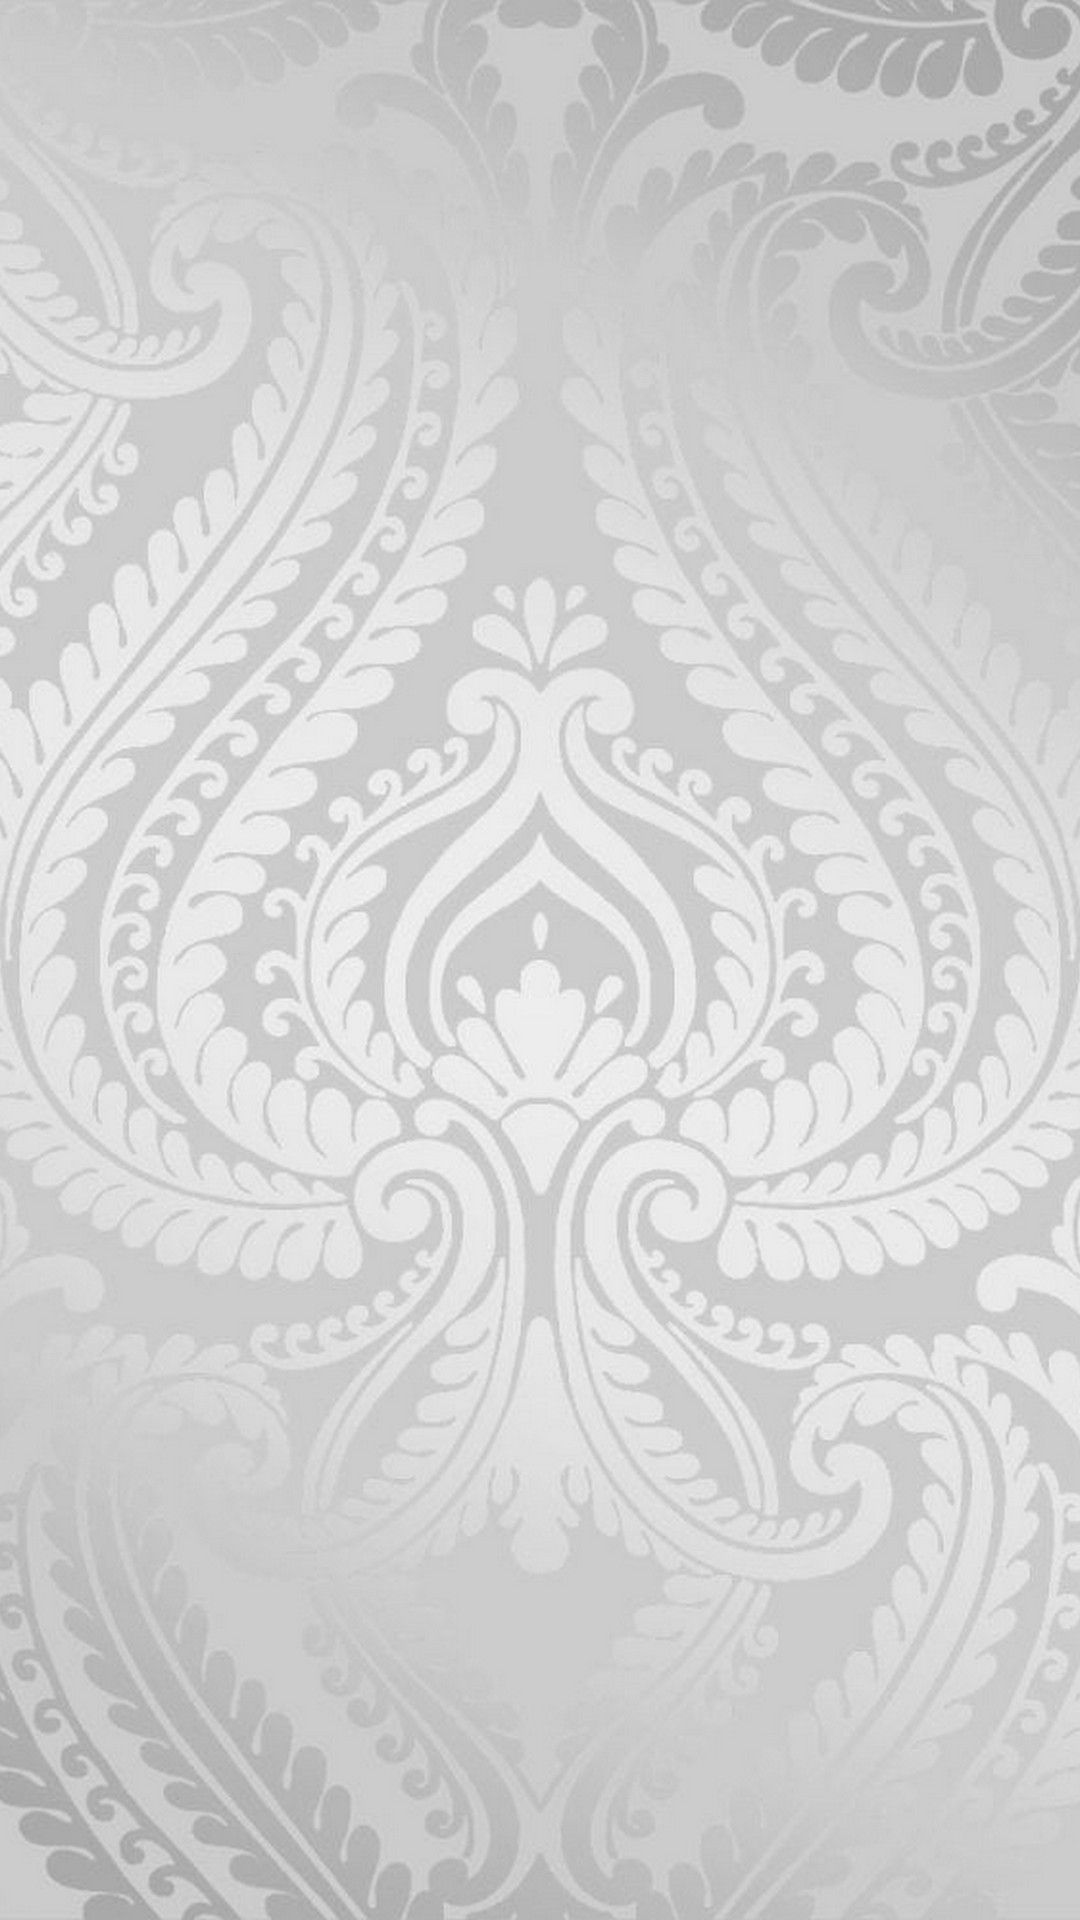 iPhone Wallpaper Grey Best iPhone Wallpaper Grey